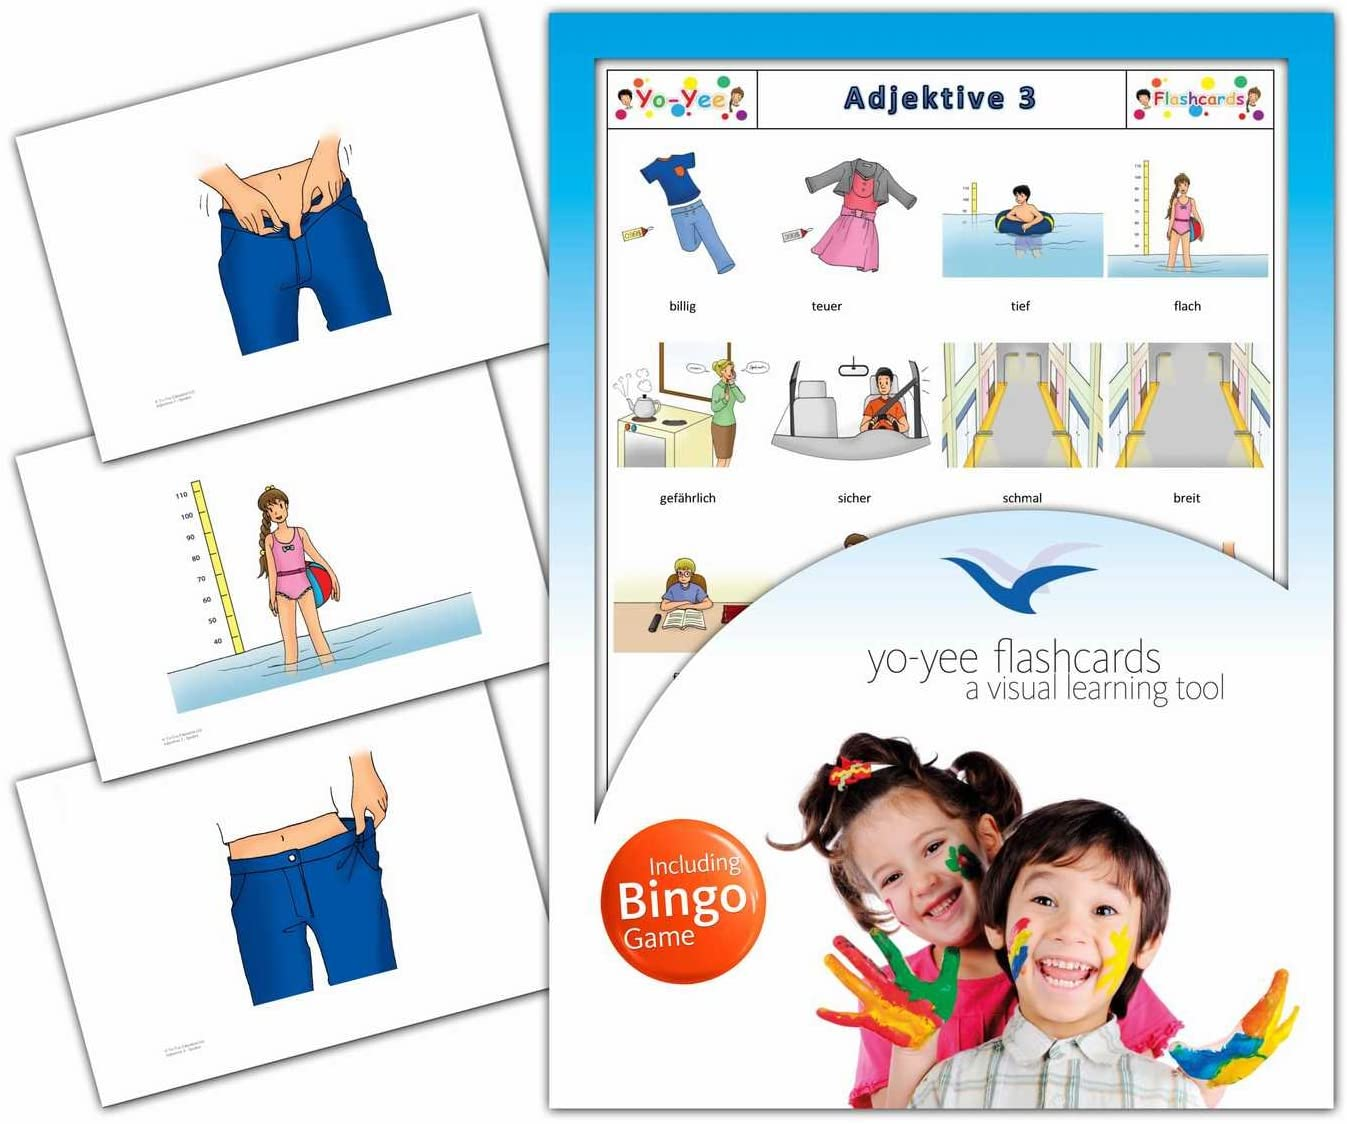 Adjectives Flashcards in German Language - Set 3 - Flash Cards with Matching Bingo Game for Toddlers, Kids, Children and Adults - Size 4.13 × 5.83 in - DIN A6